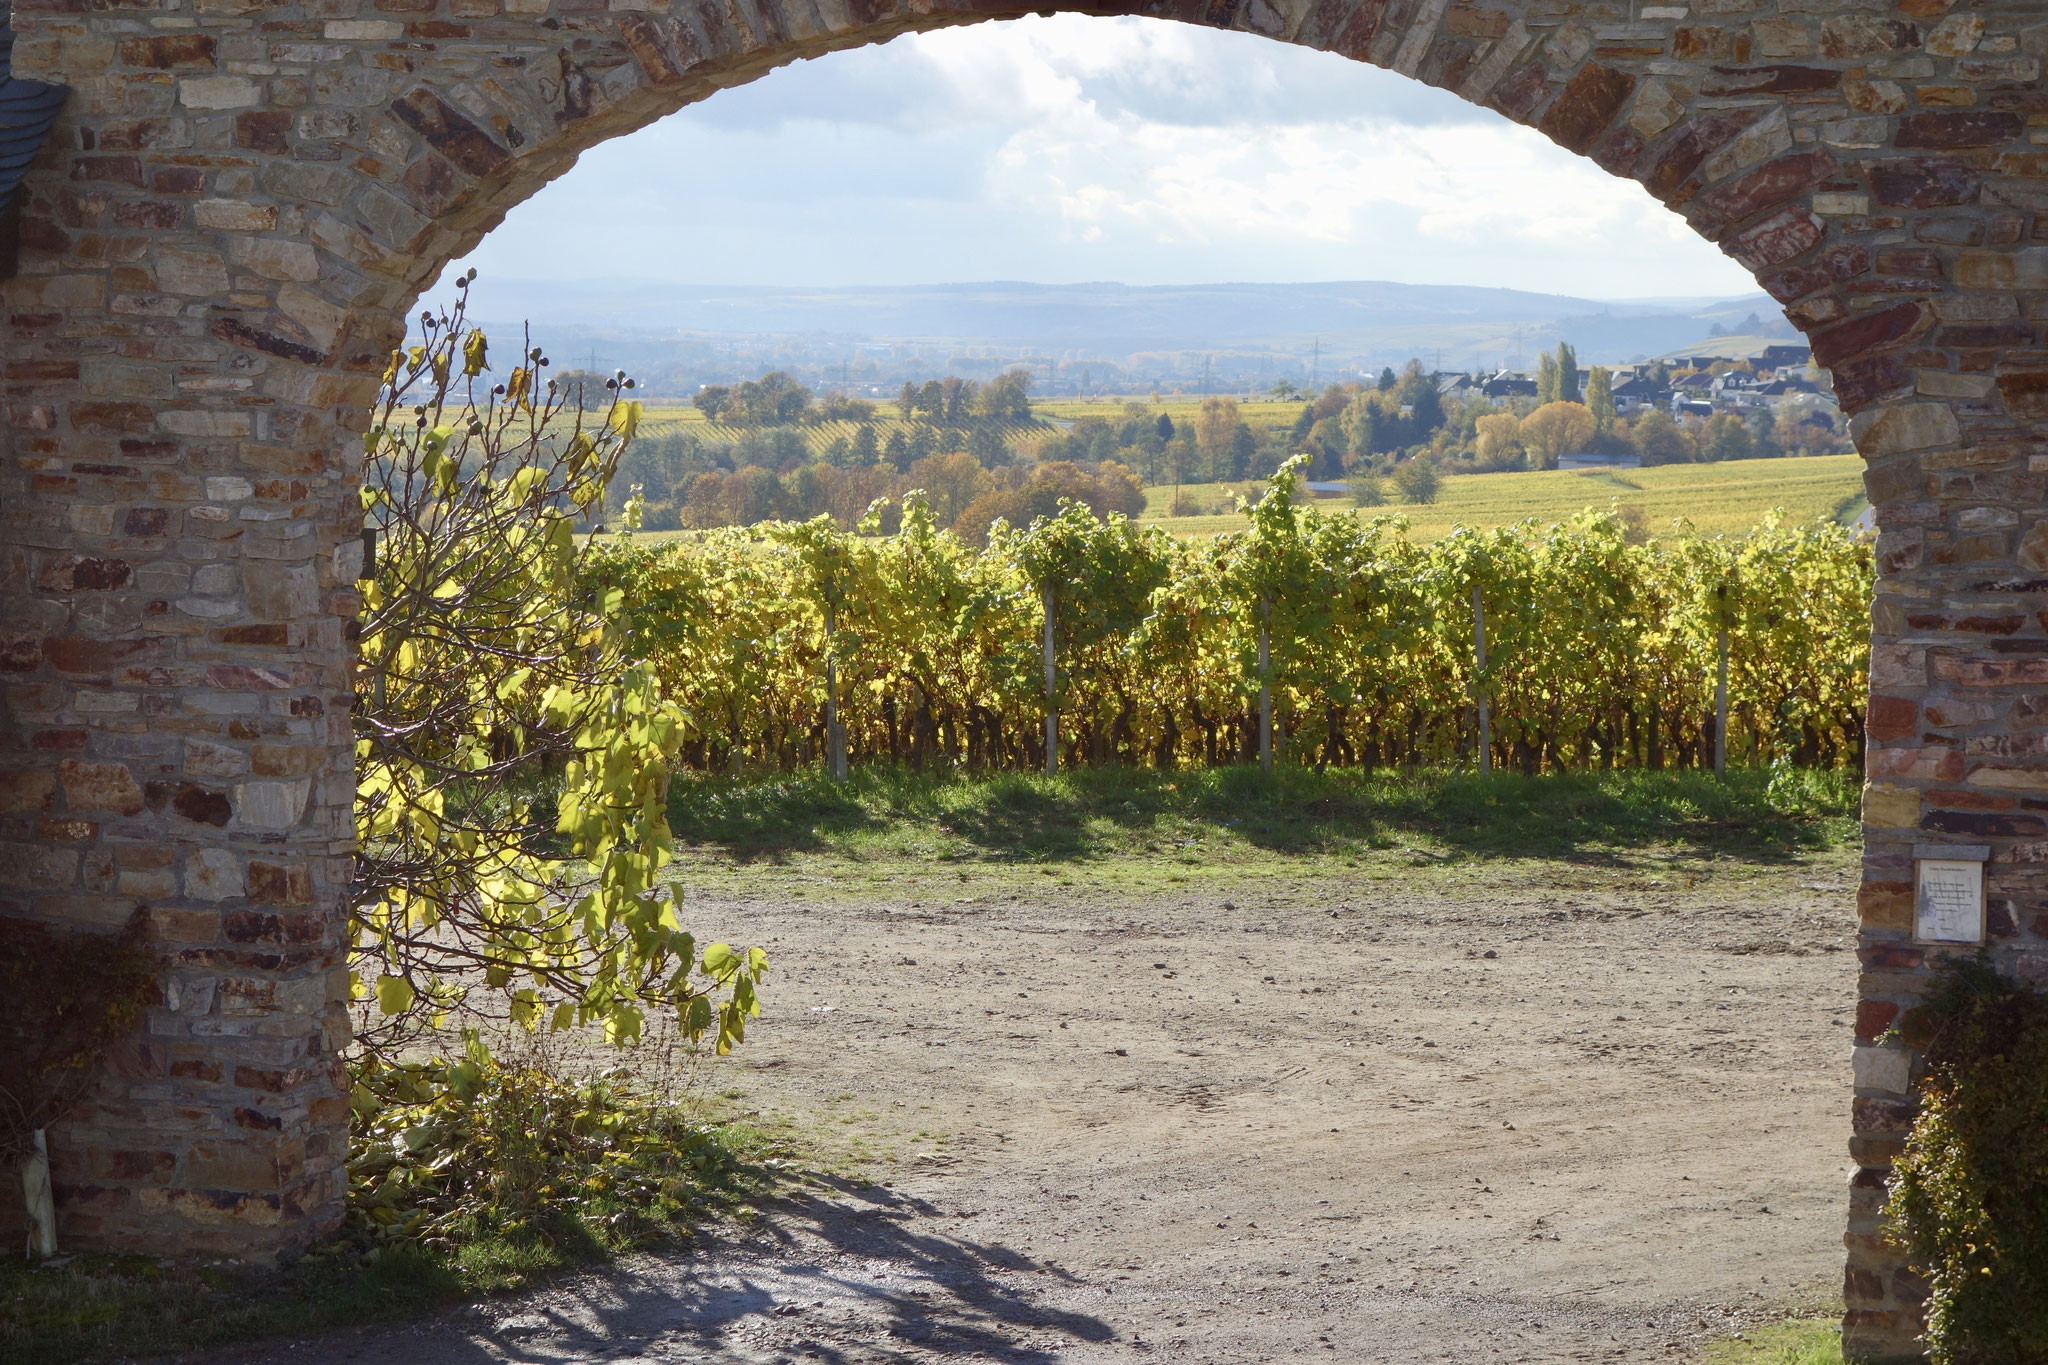 A view of the famous Steinberg vineyard